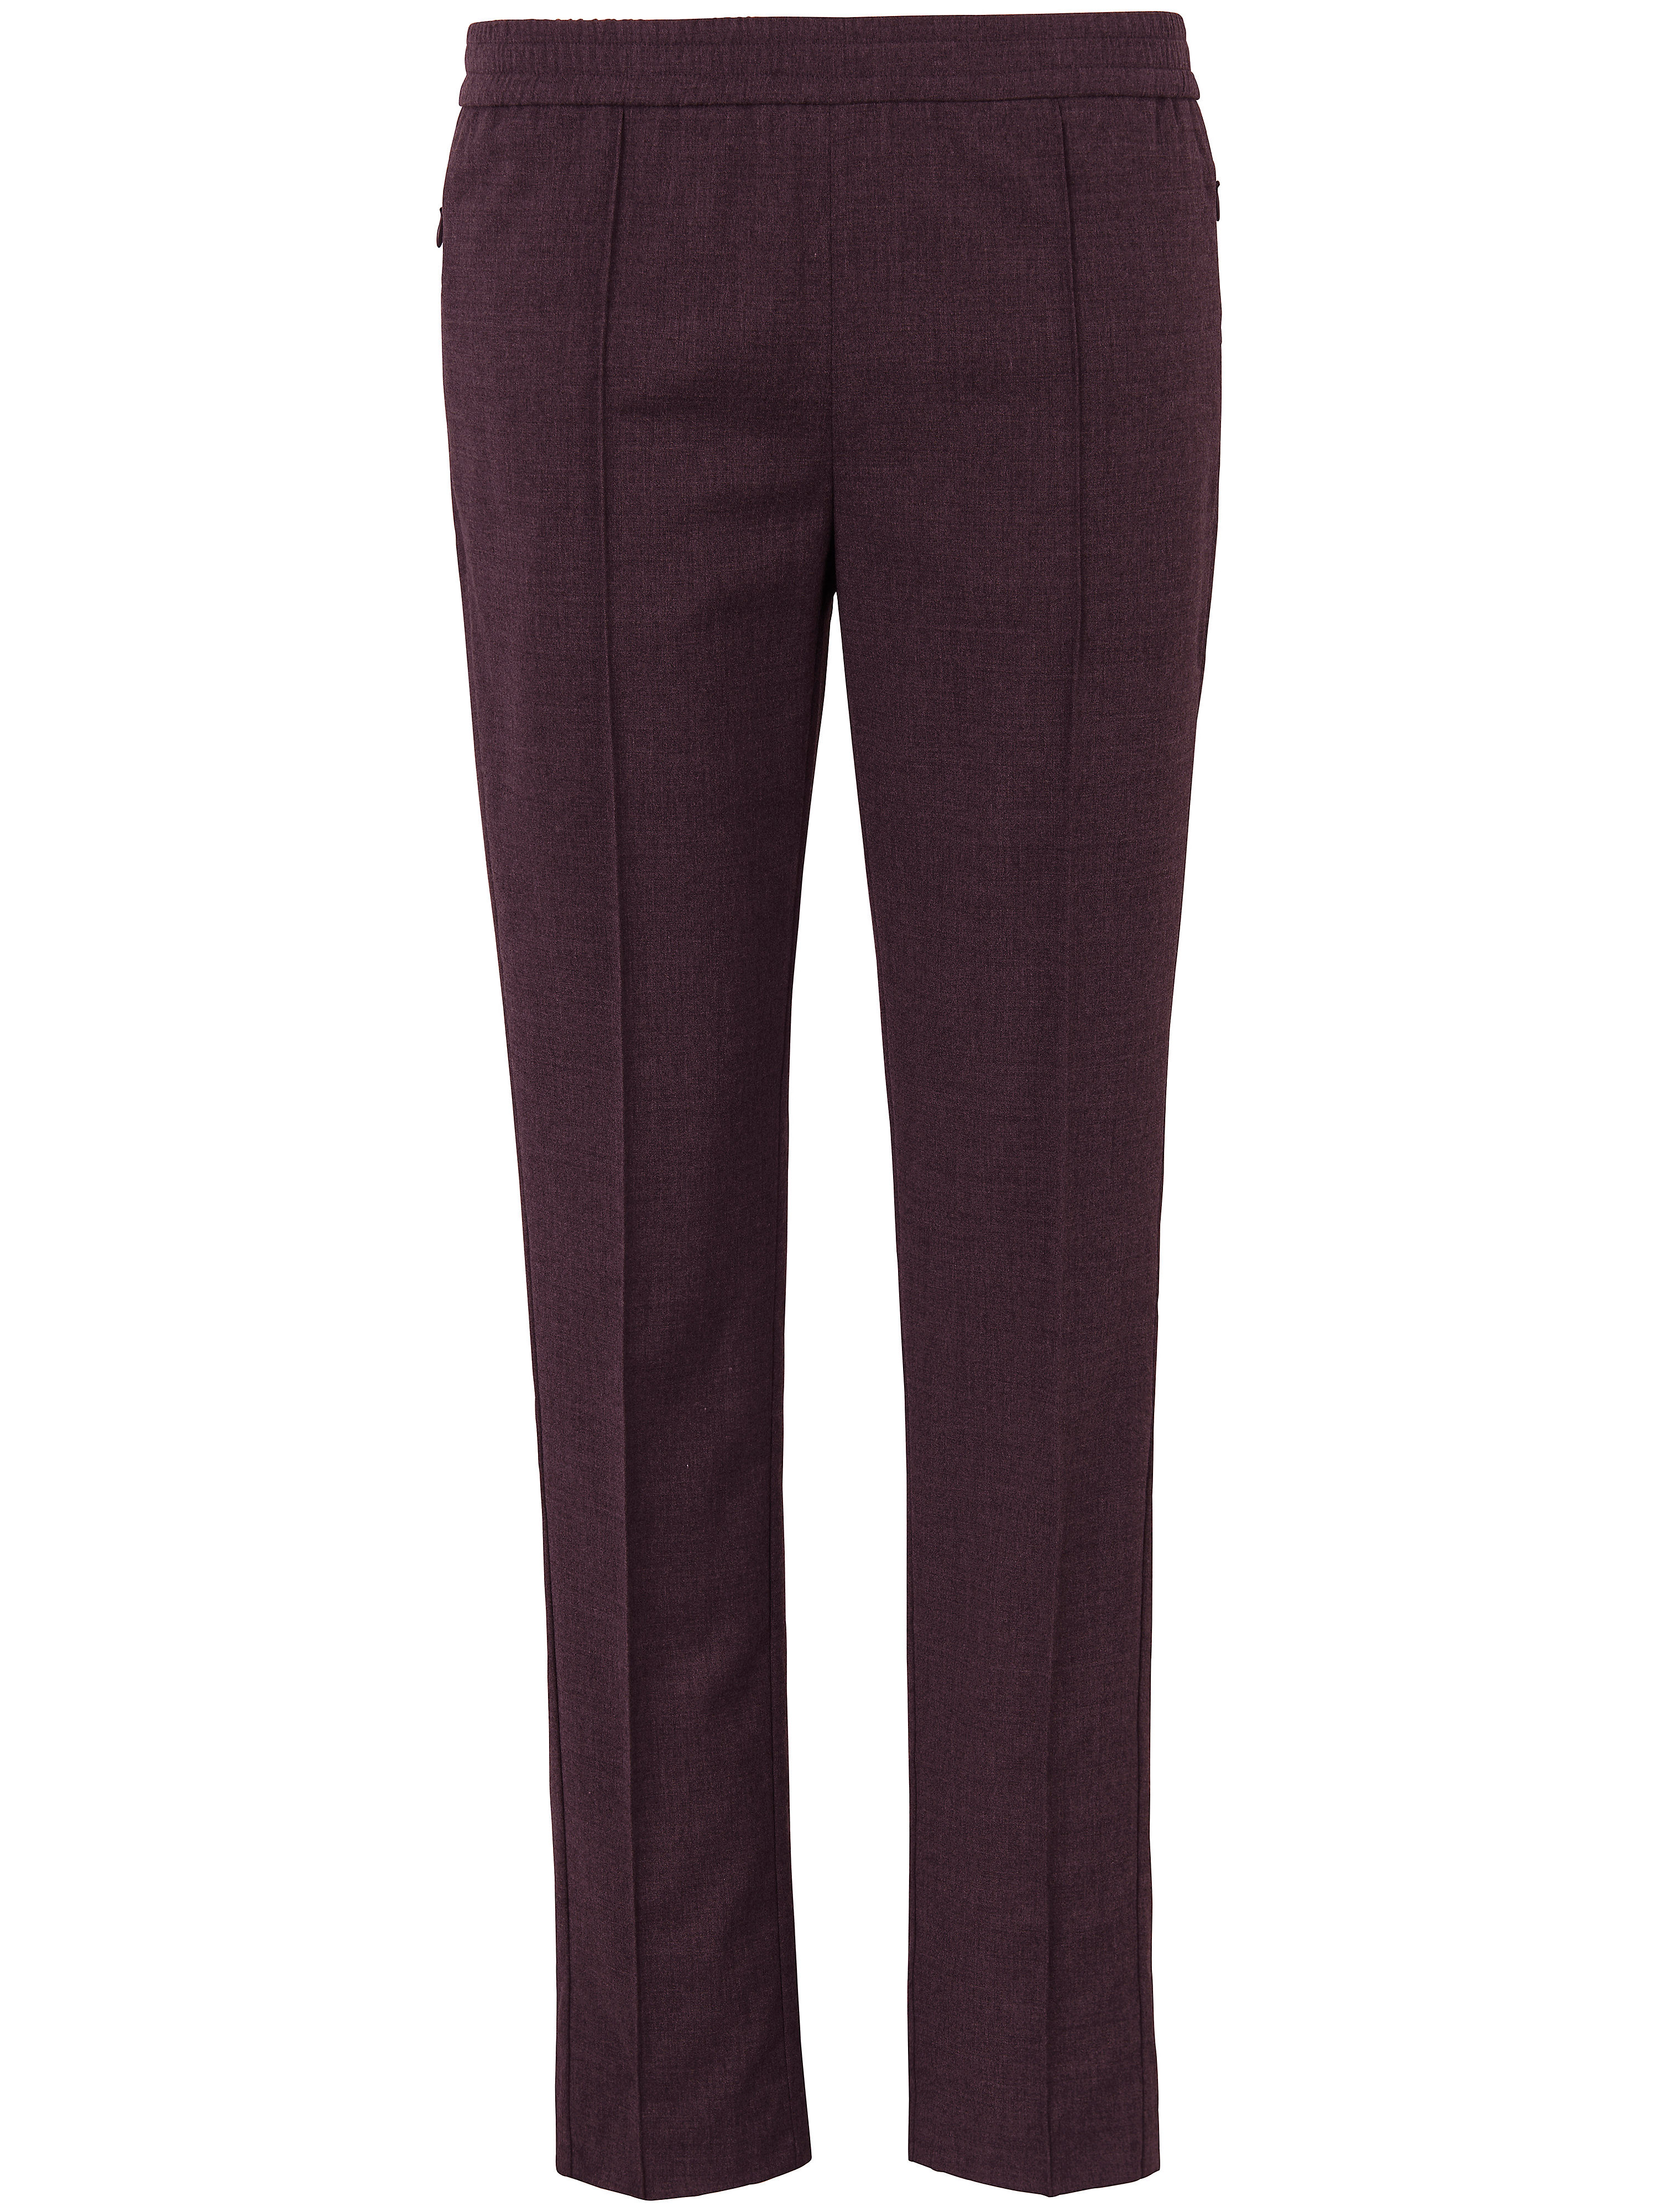 Le pantalon 7/8  Peter Hahn rouge taille 46